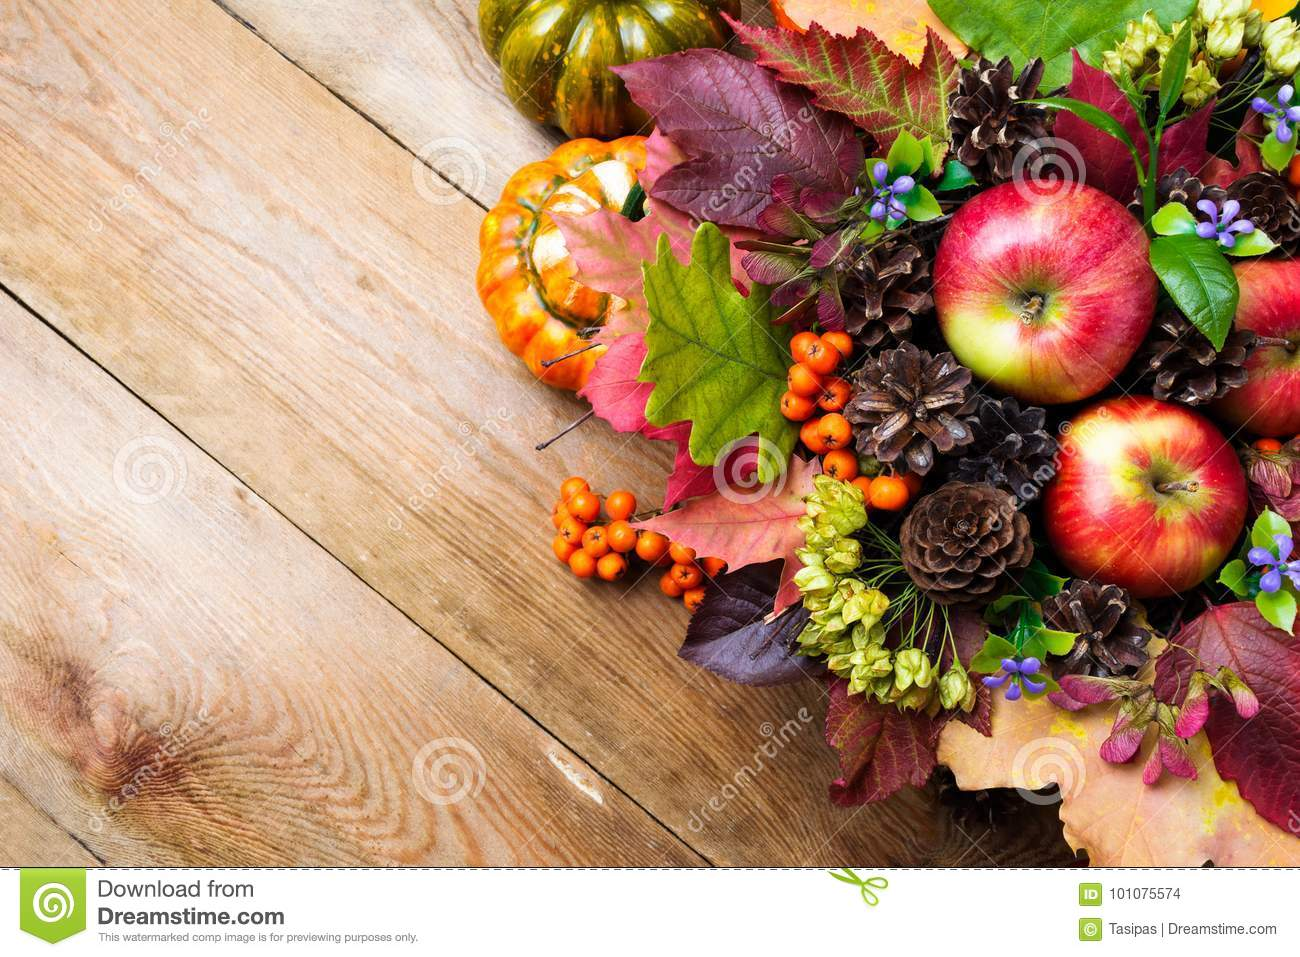 Fall background with blue flowers and colorful leaves copy spac download fall background with blue flowers and colorful leaves copy spac stock photo image izmirmasajfo